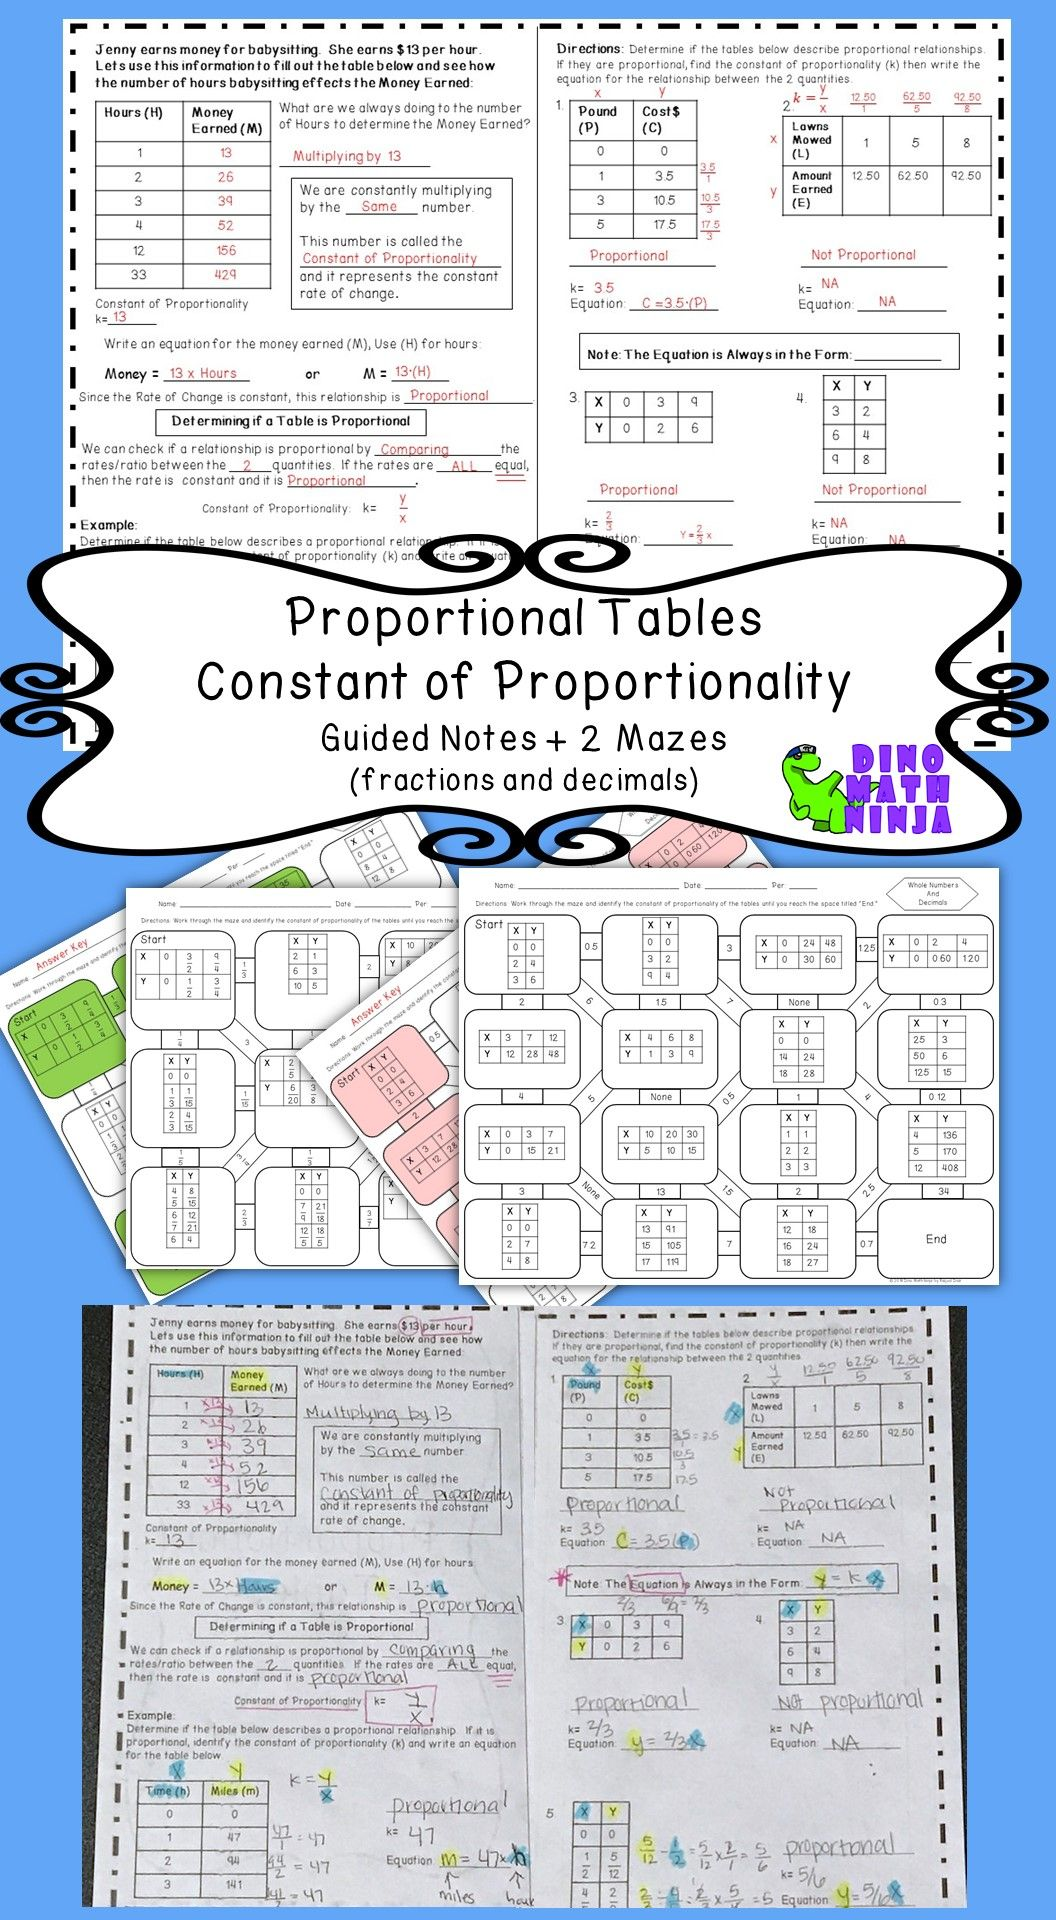 7 Rp Proportional Tables K Value Mazes Guided Notes